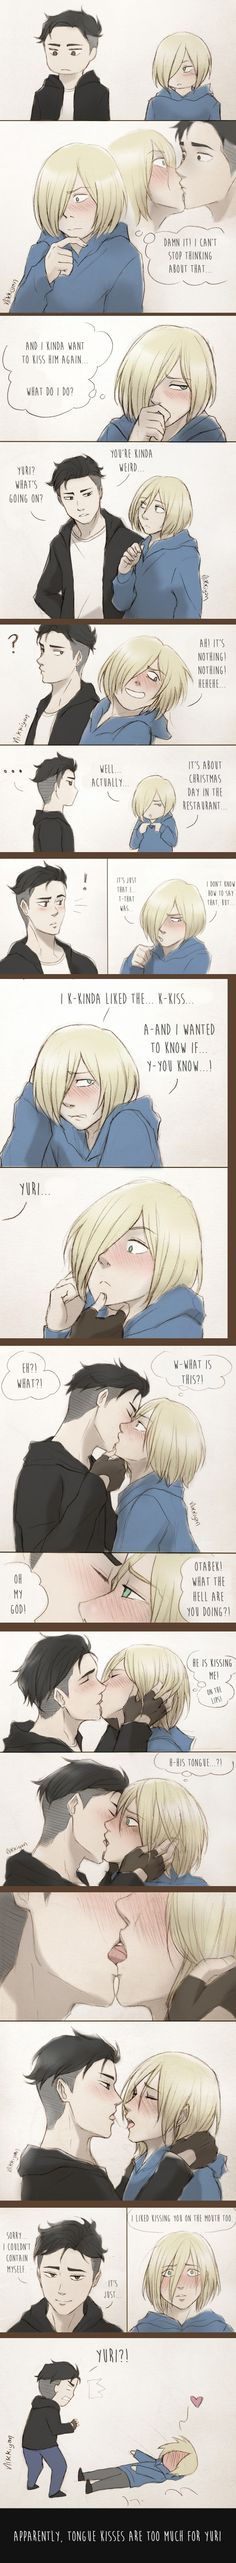 Yaoi Bien Perrum - otabek x yurio Yuri Plisetsky, Me Anime, Anime Love, Anime Couples, Cute Couples, Love Kiss Couple, Yurio And Otabek, Yuri On Ice Comic, Yuri!!! On Ice